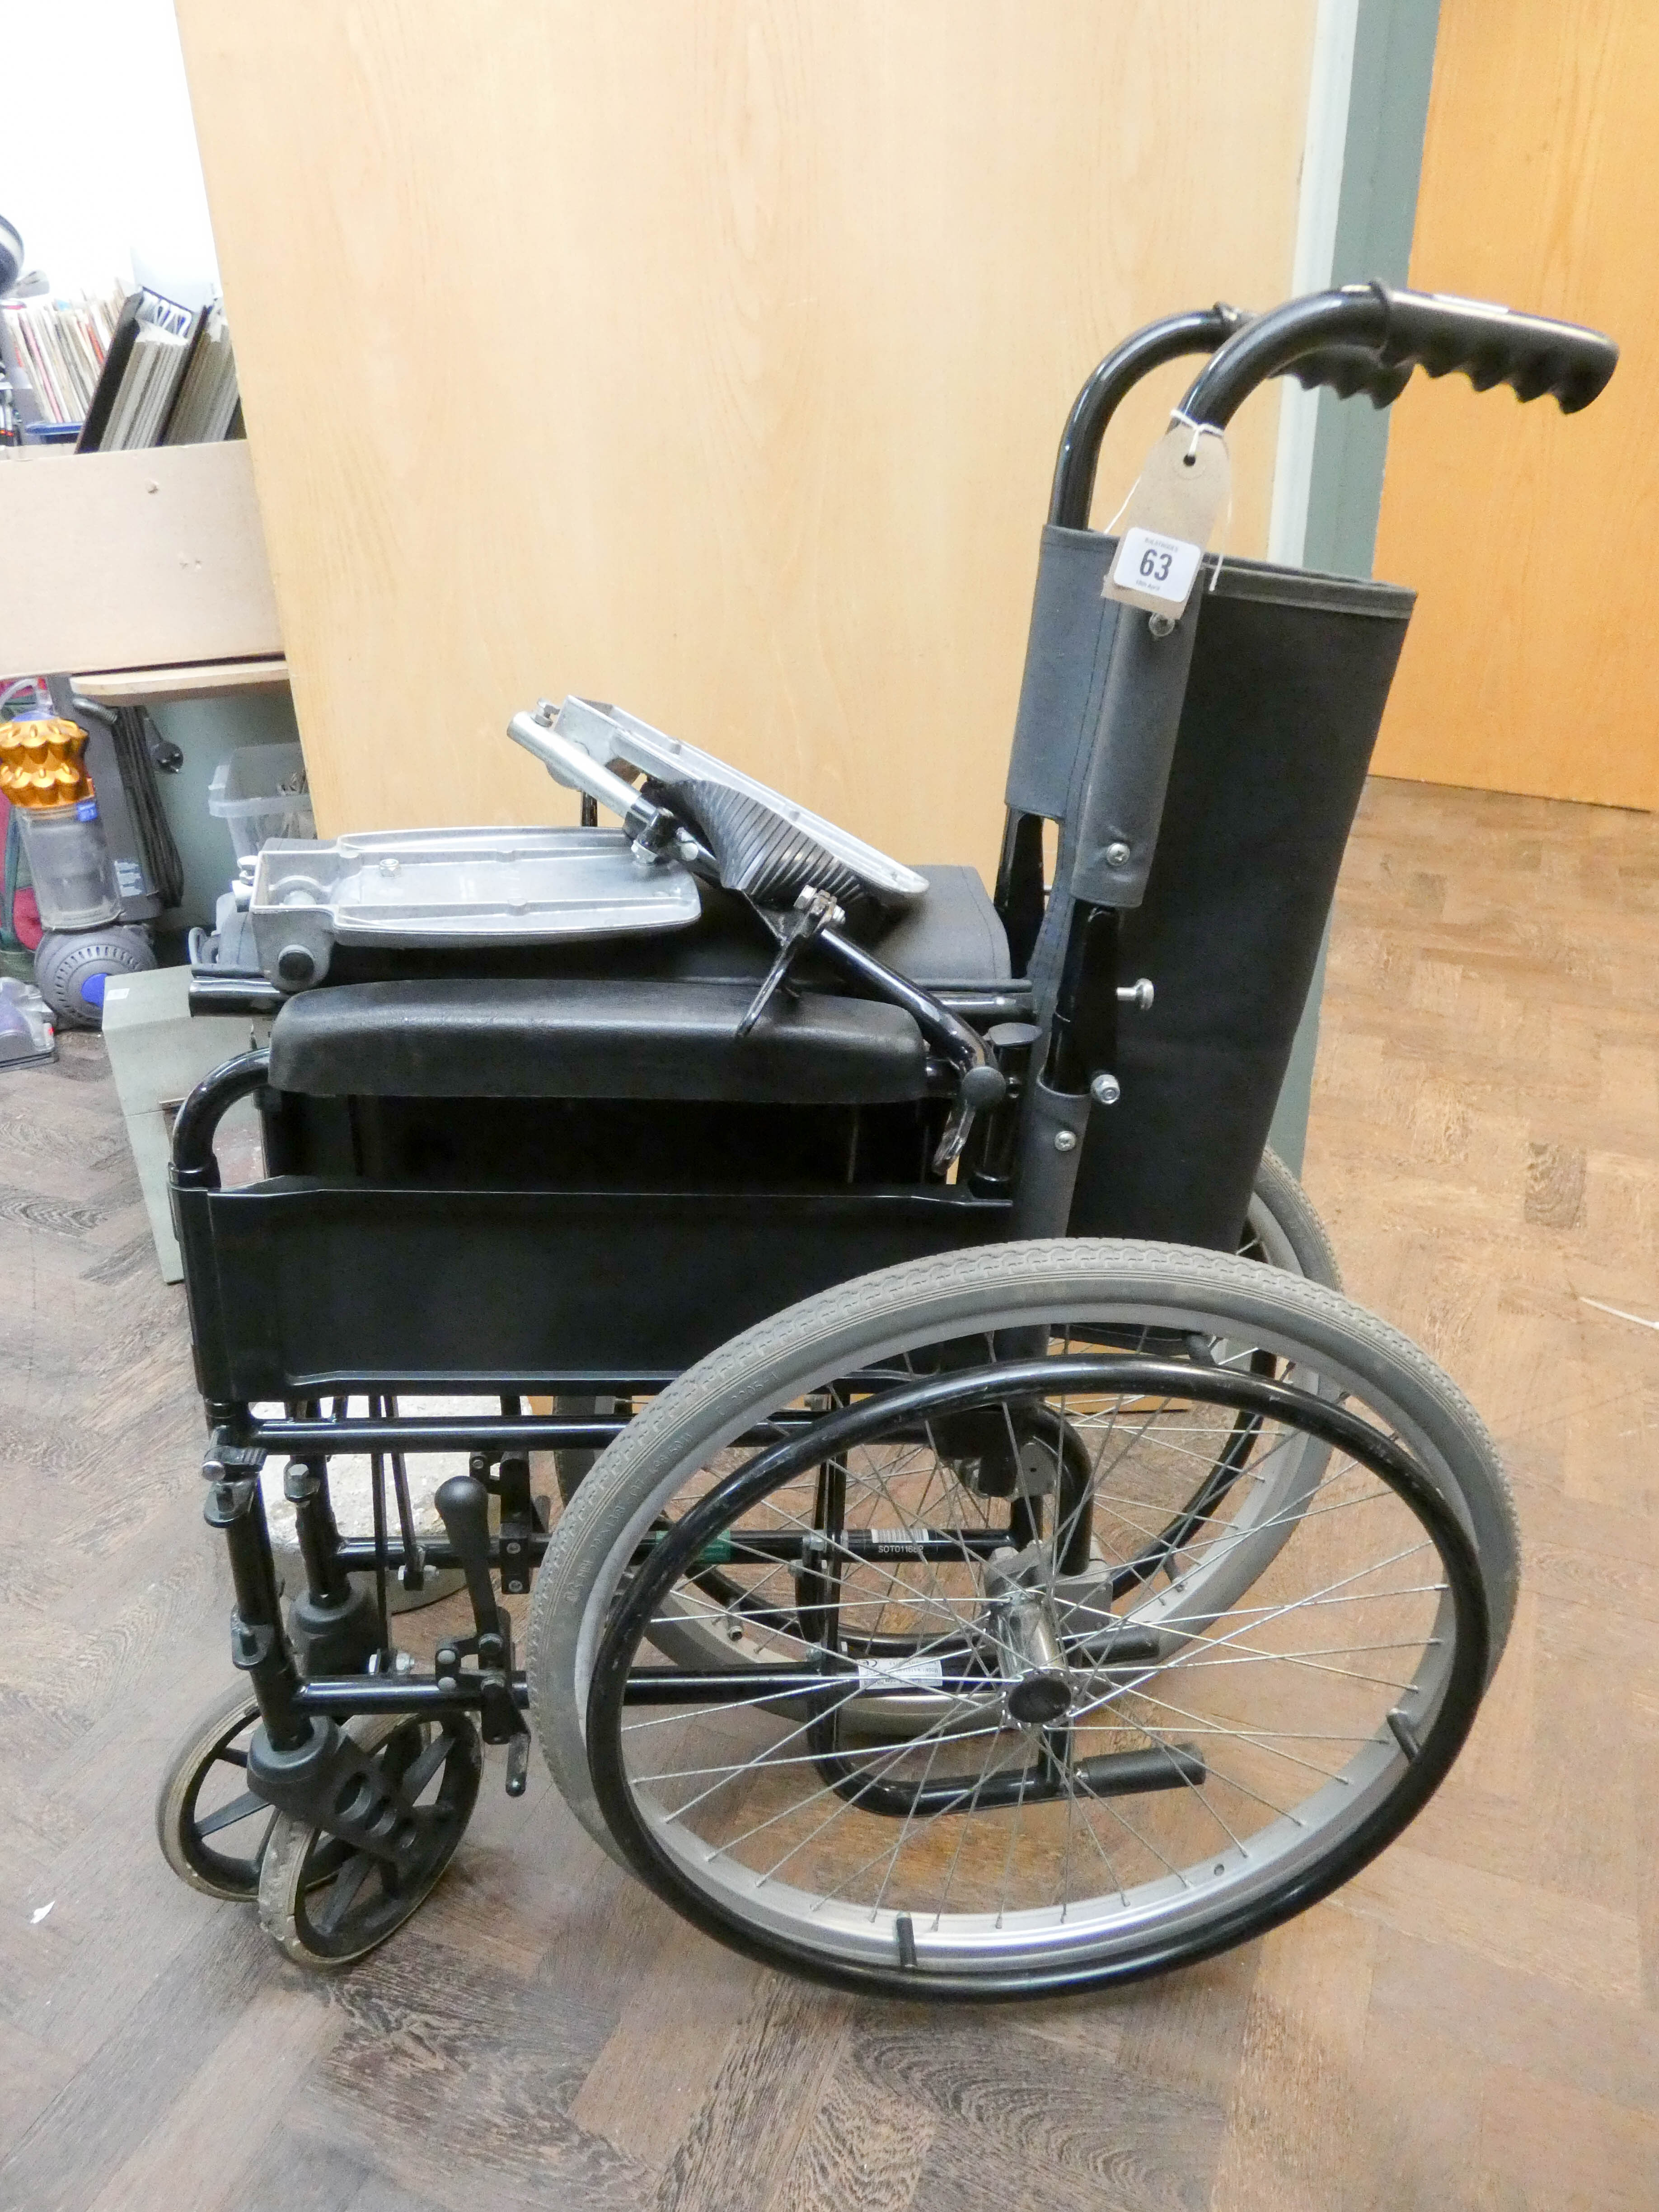 Lot 63 - A fold up self-propelled wheelchair